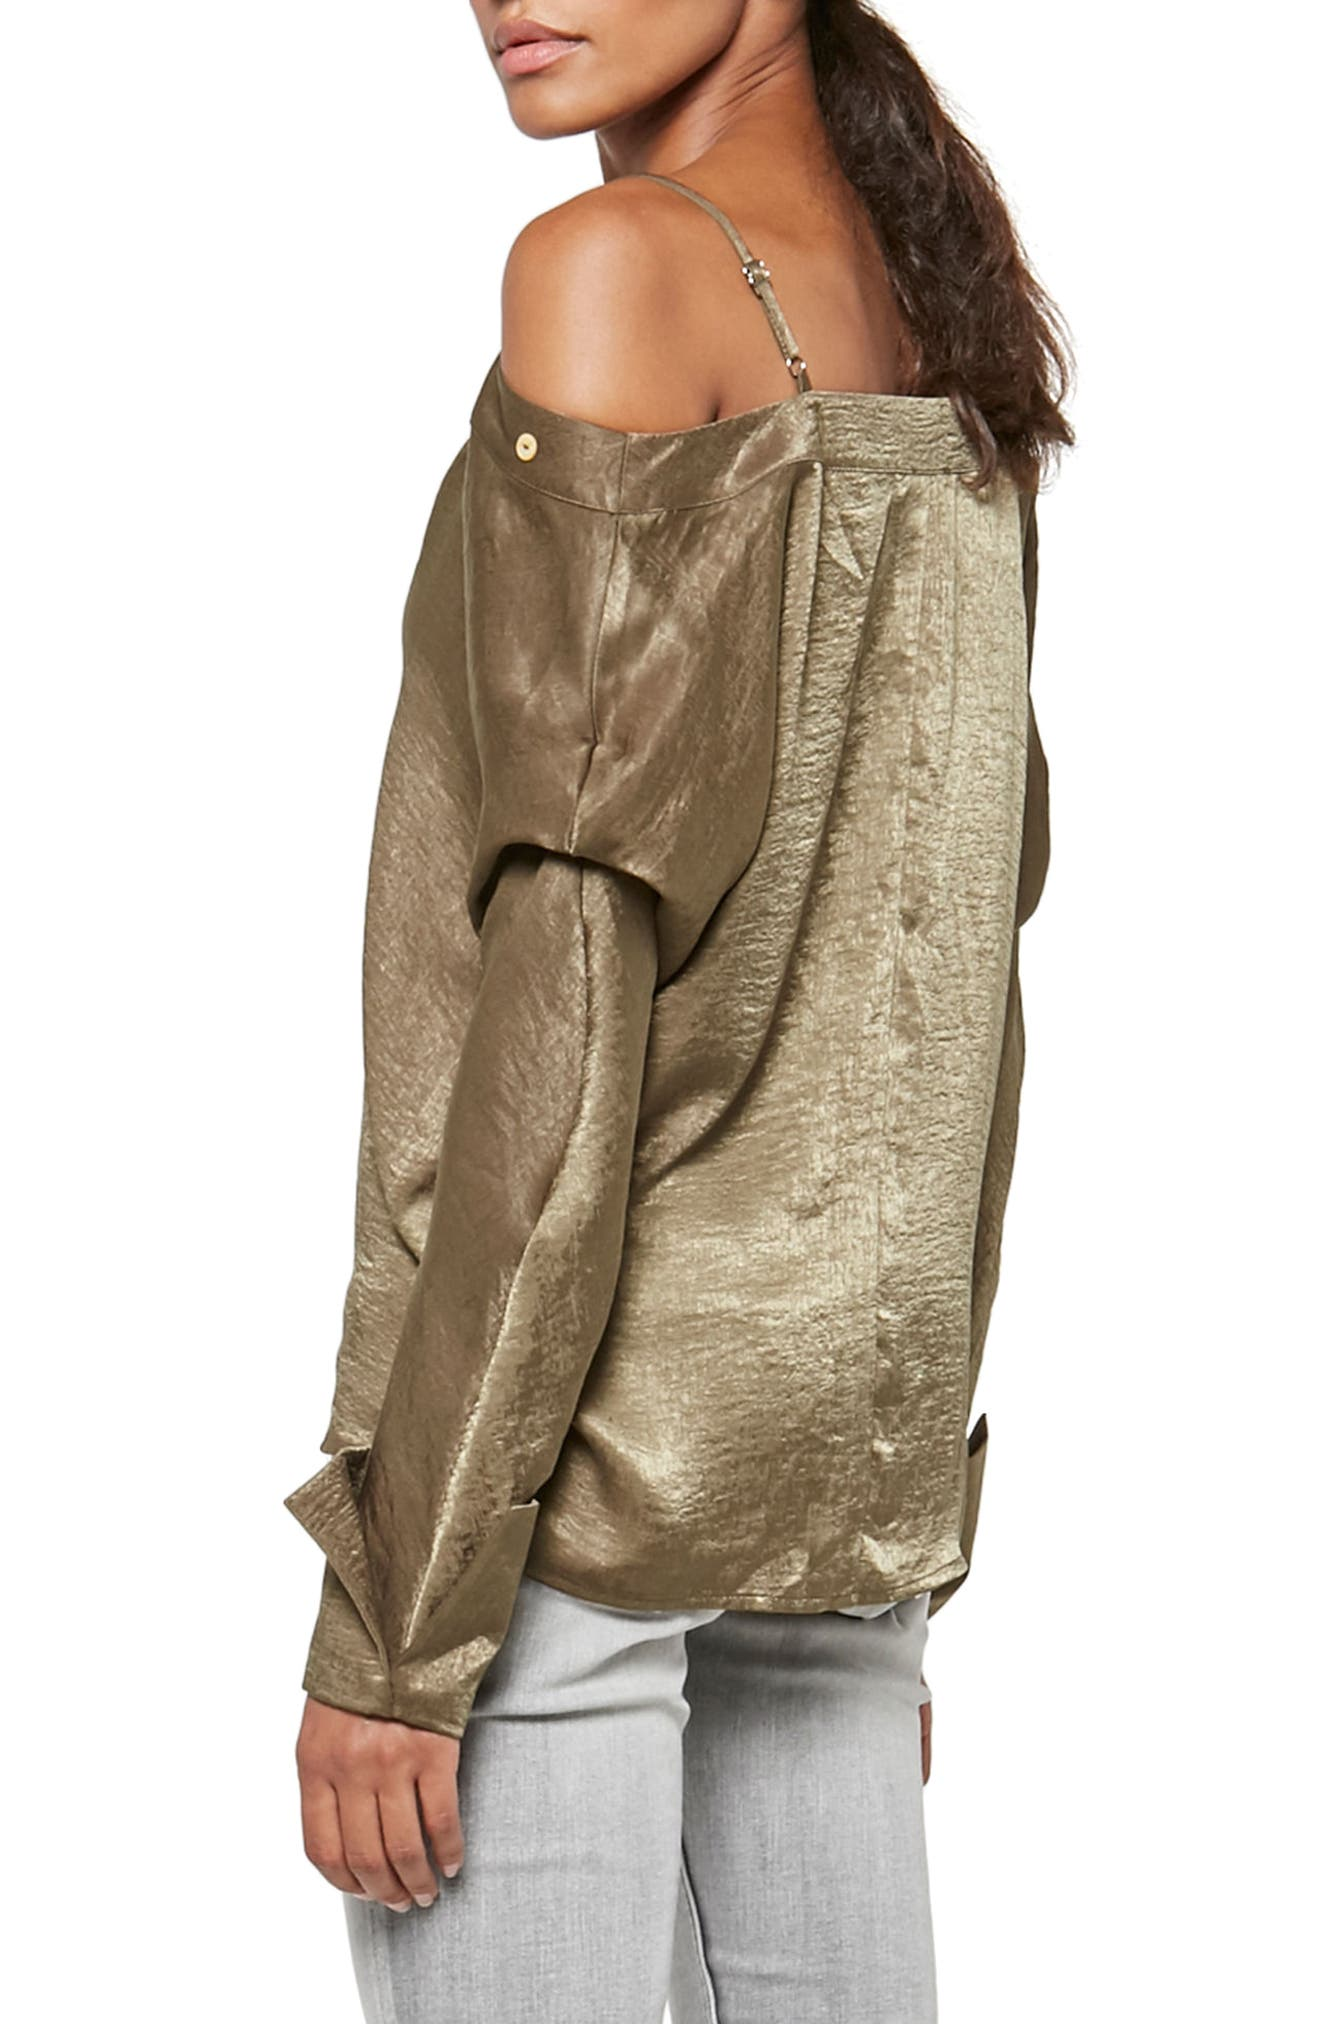 Alpha & Omega Satin Off the Shoulder Blouse,                             Alternate thumbnail 2, color,                             Olive